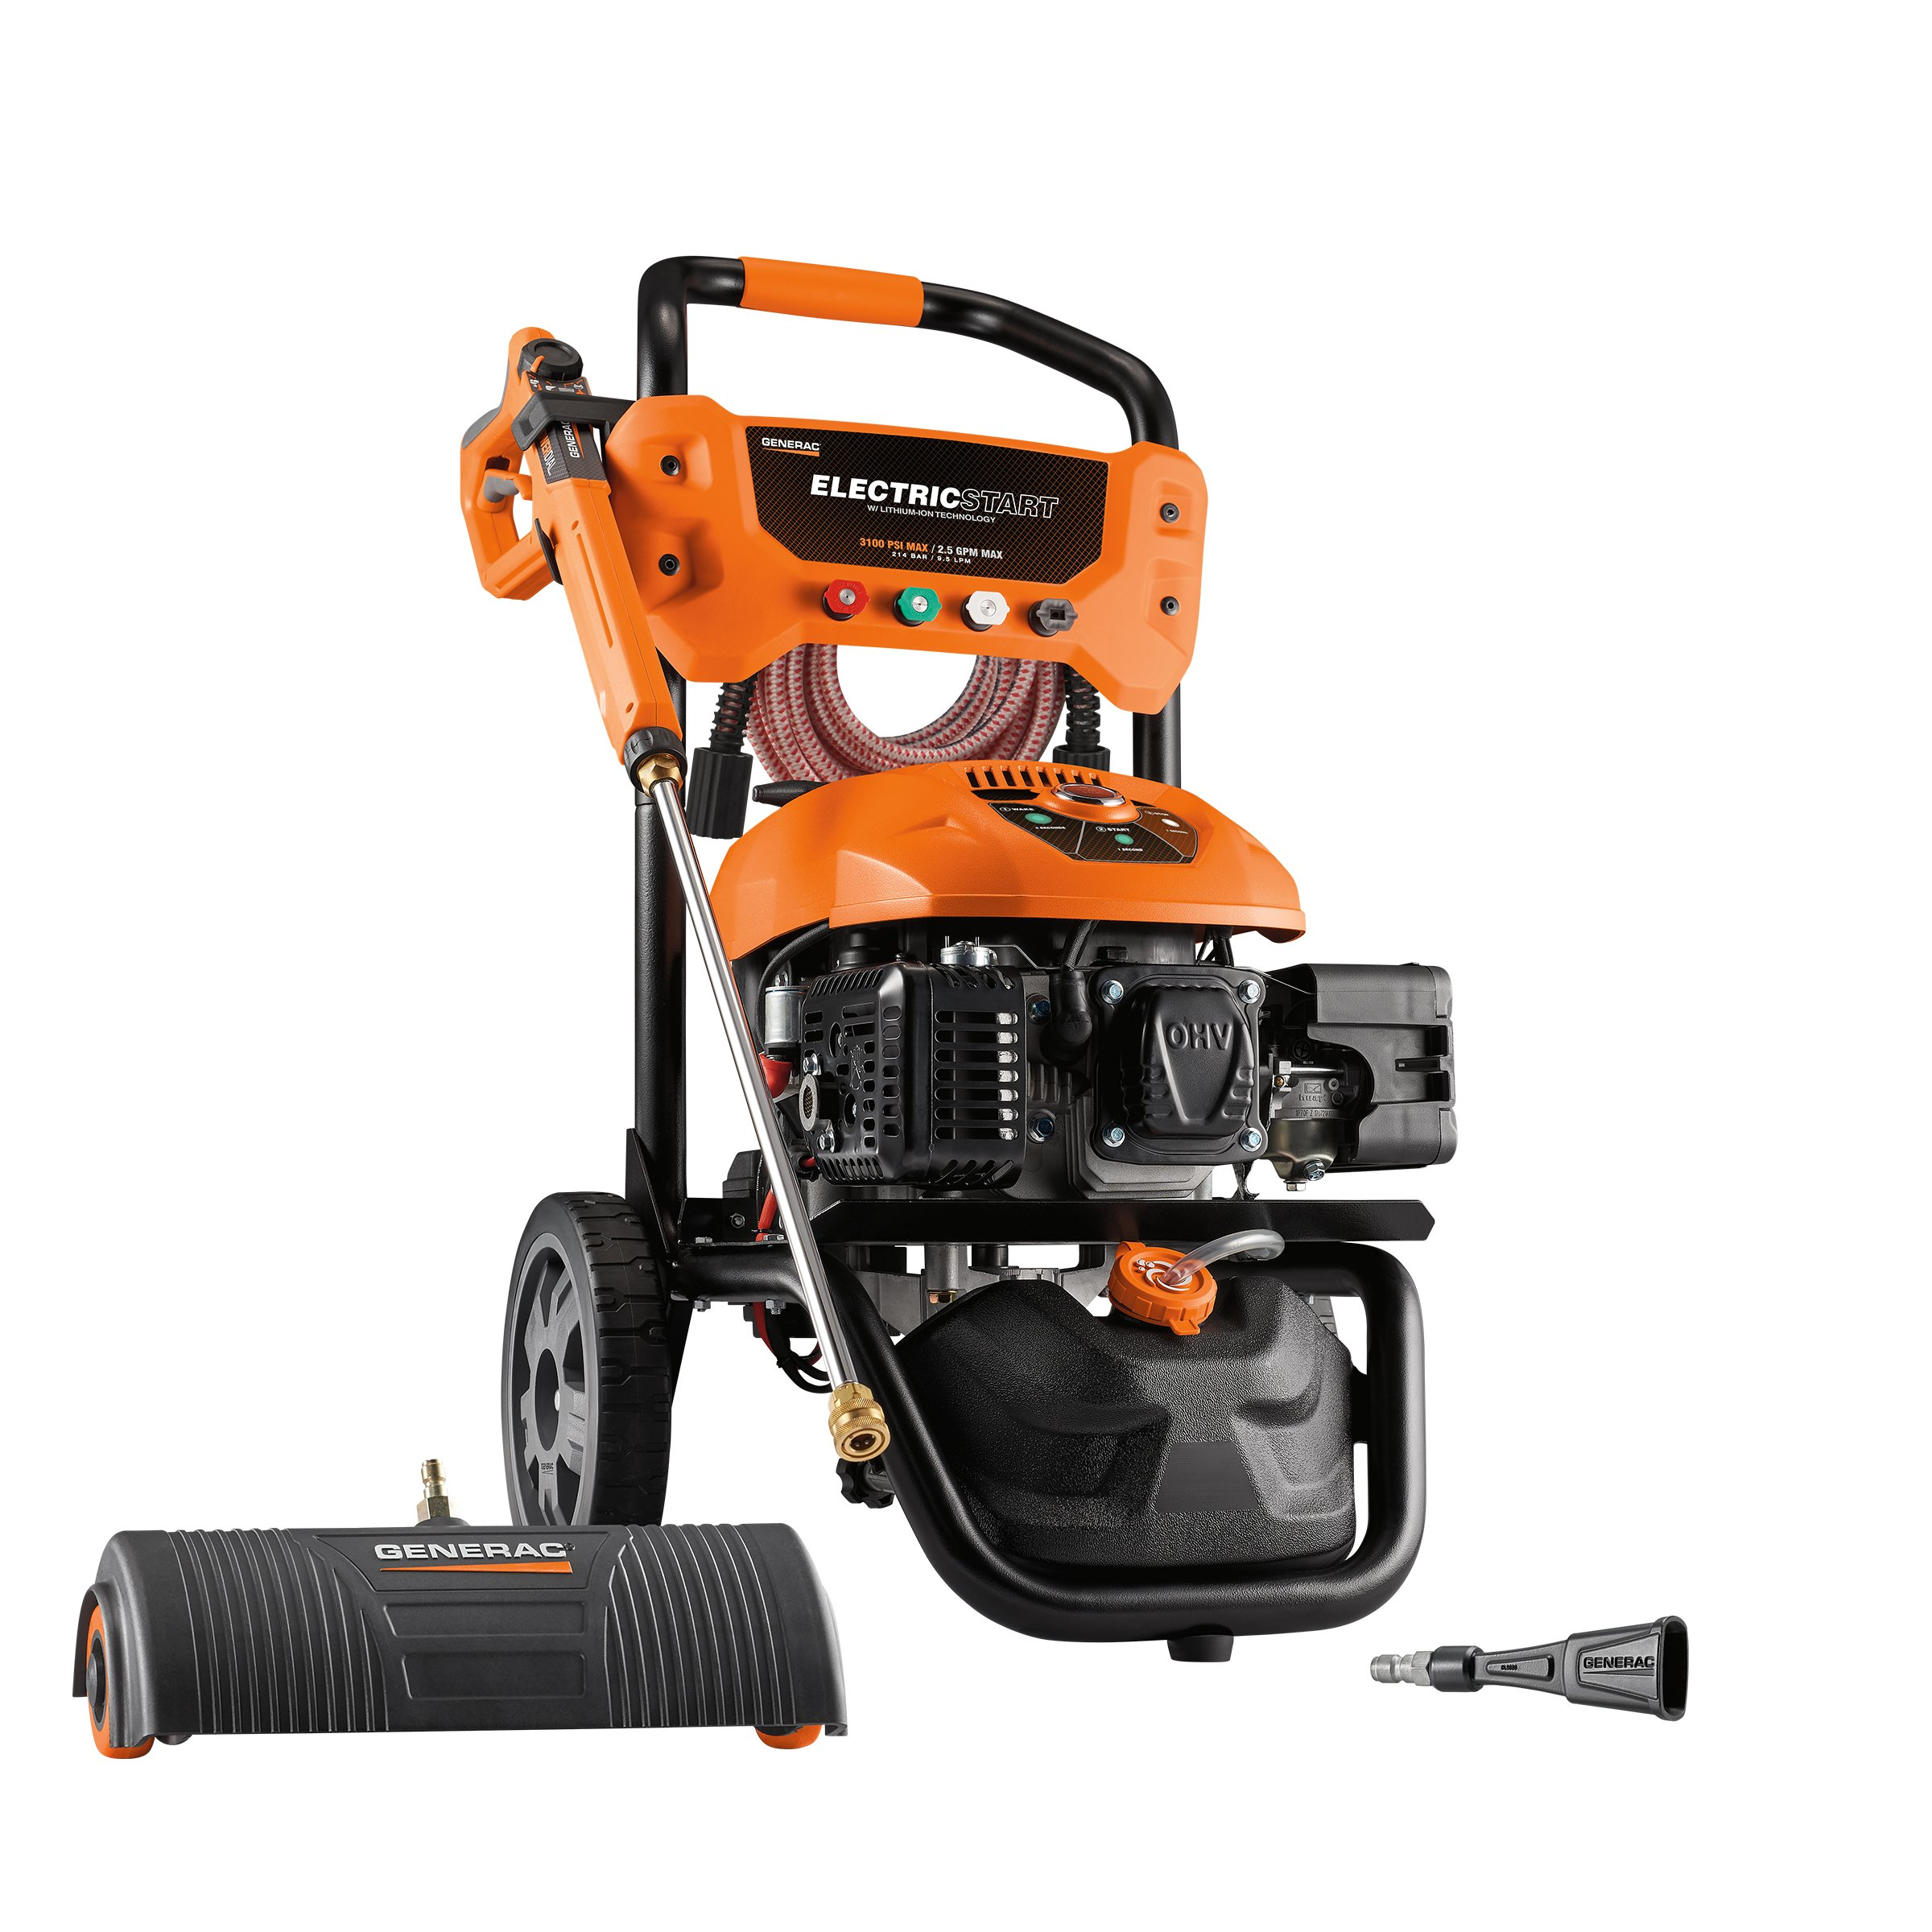 Generac Gas Pressure Washer Kit 3100 PSI 2.5 GPM Lithium-Ion Electric Start with PowerDial Spray Gun, 30' Ultra Flex Hose and 4 Nozzles - Includes Power Broom & Soap Blaster